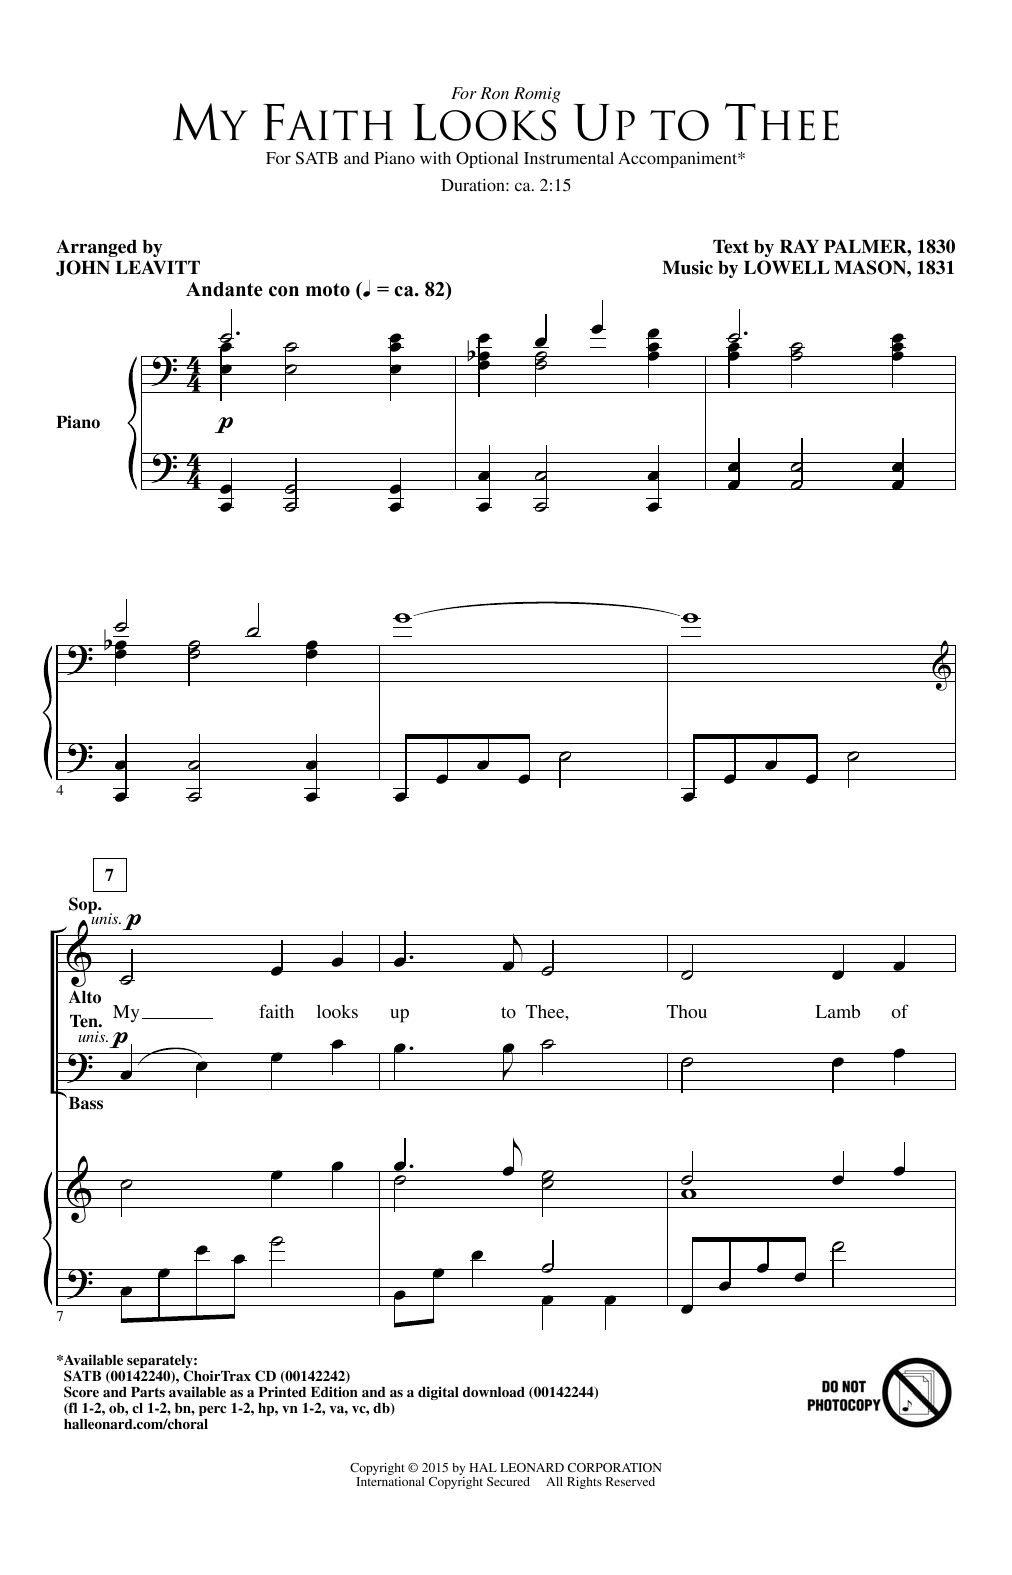 Partition chorale My Faith Looks Up To Thee (arr. John Leavitt) de Lowell Mason - SATB